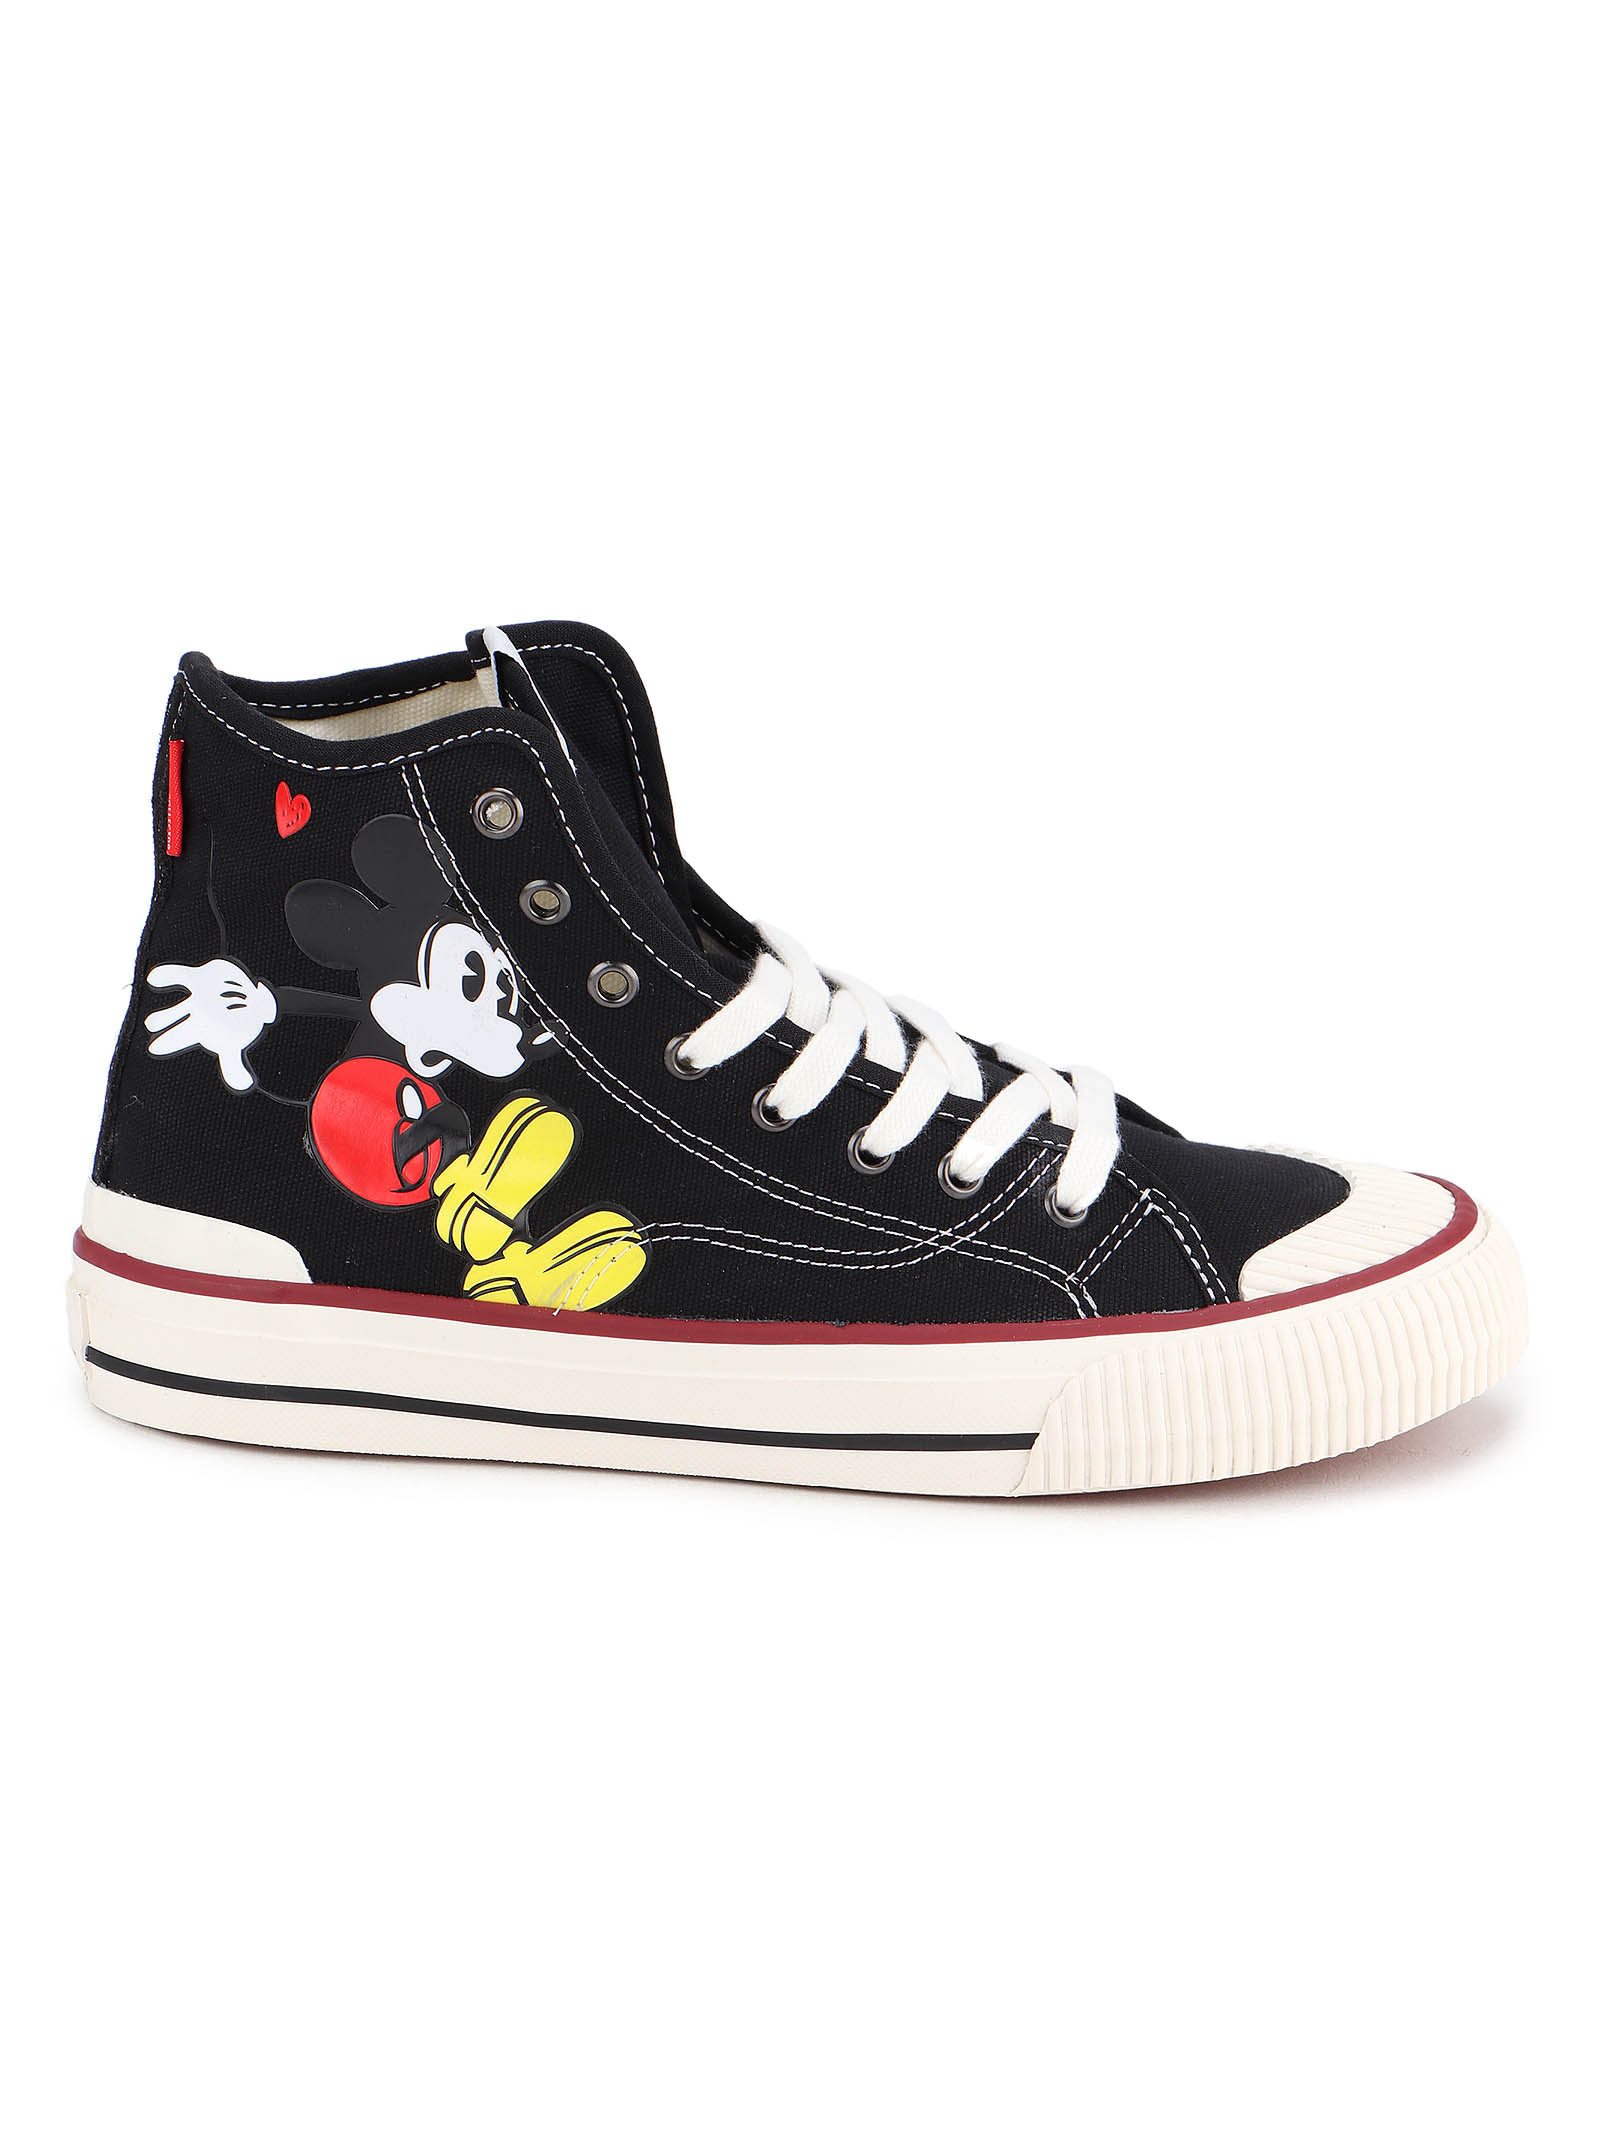 Picture of Moa Master Of Arts High Mickey Mouse Sneaker